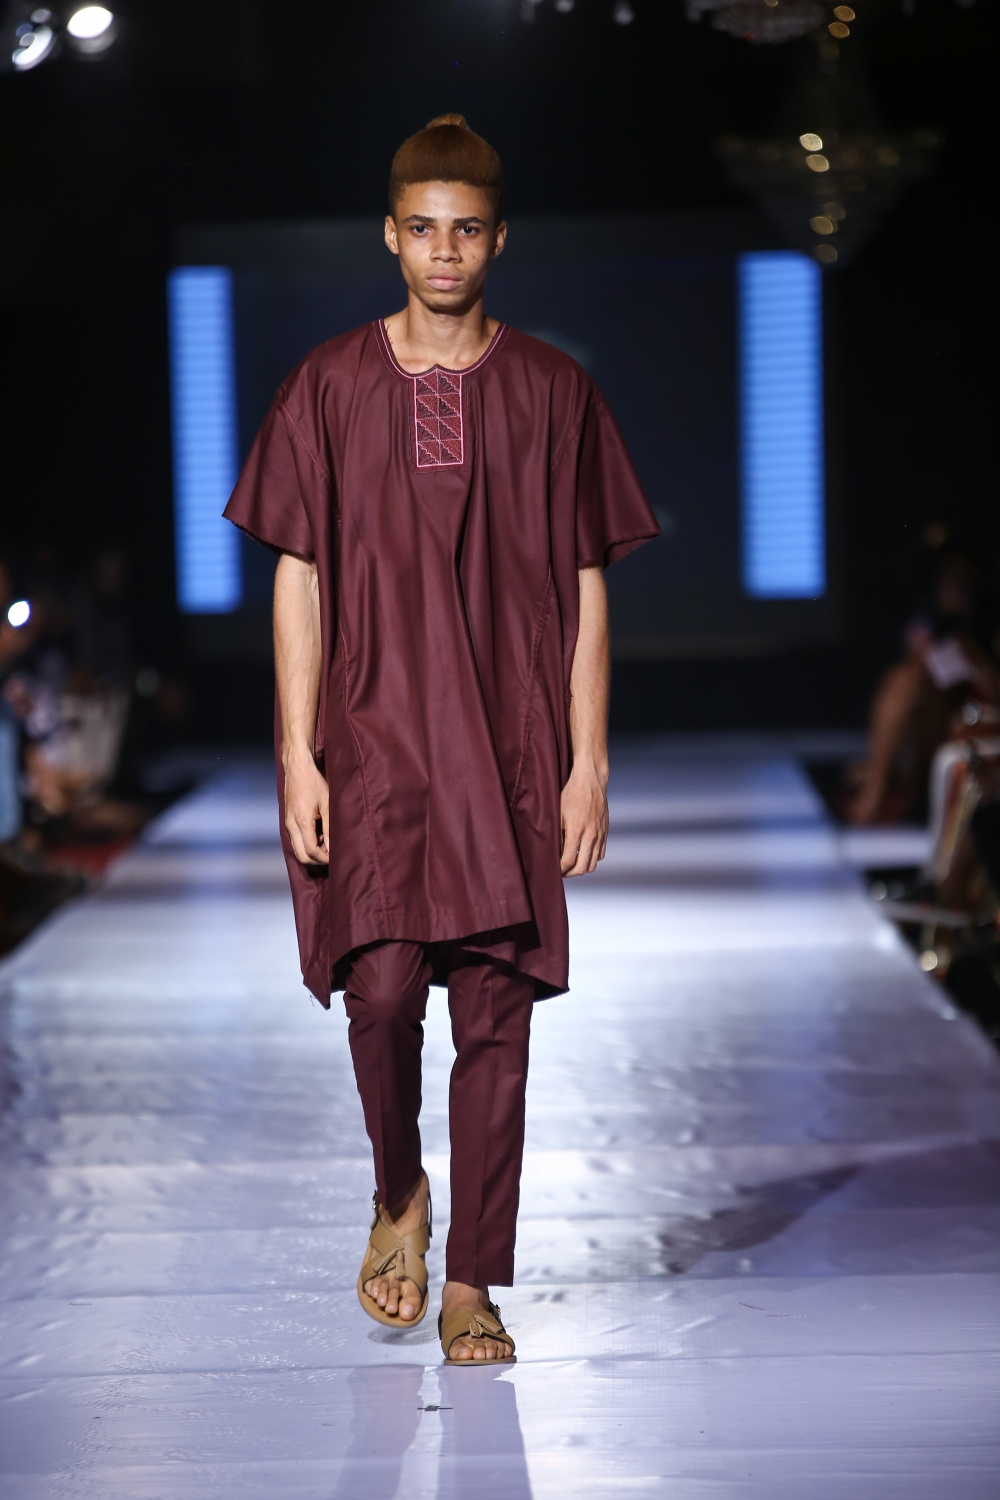 #AFWN17 | Africa Fashion Week Nigeria Day 1: LLGB